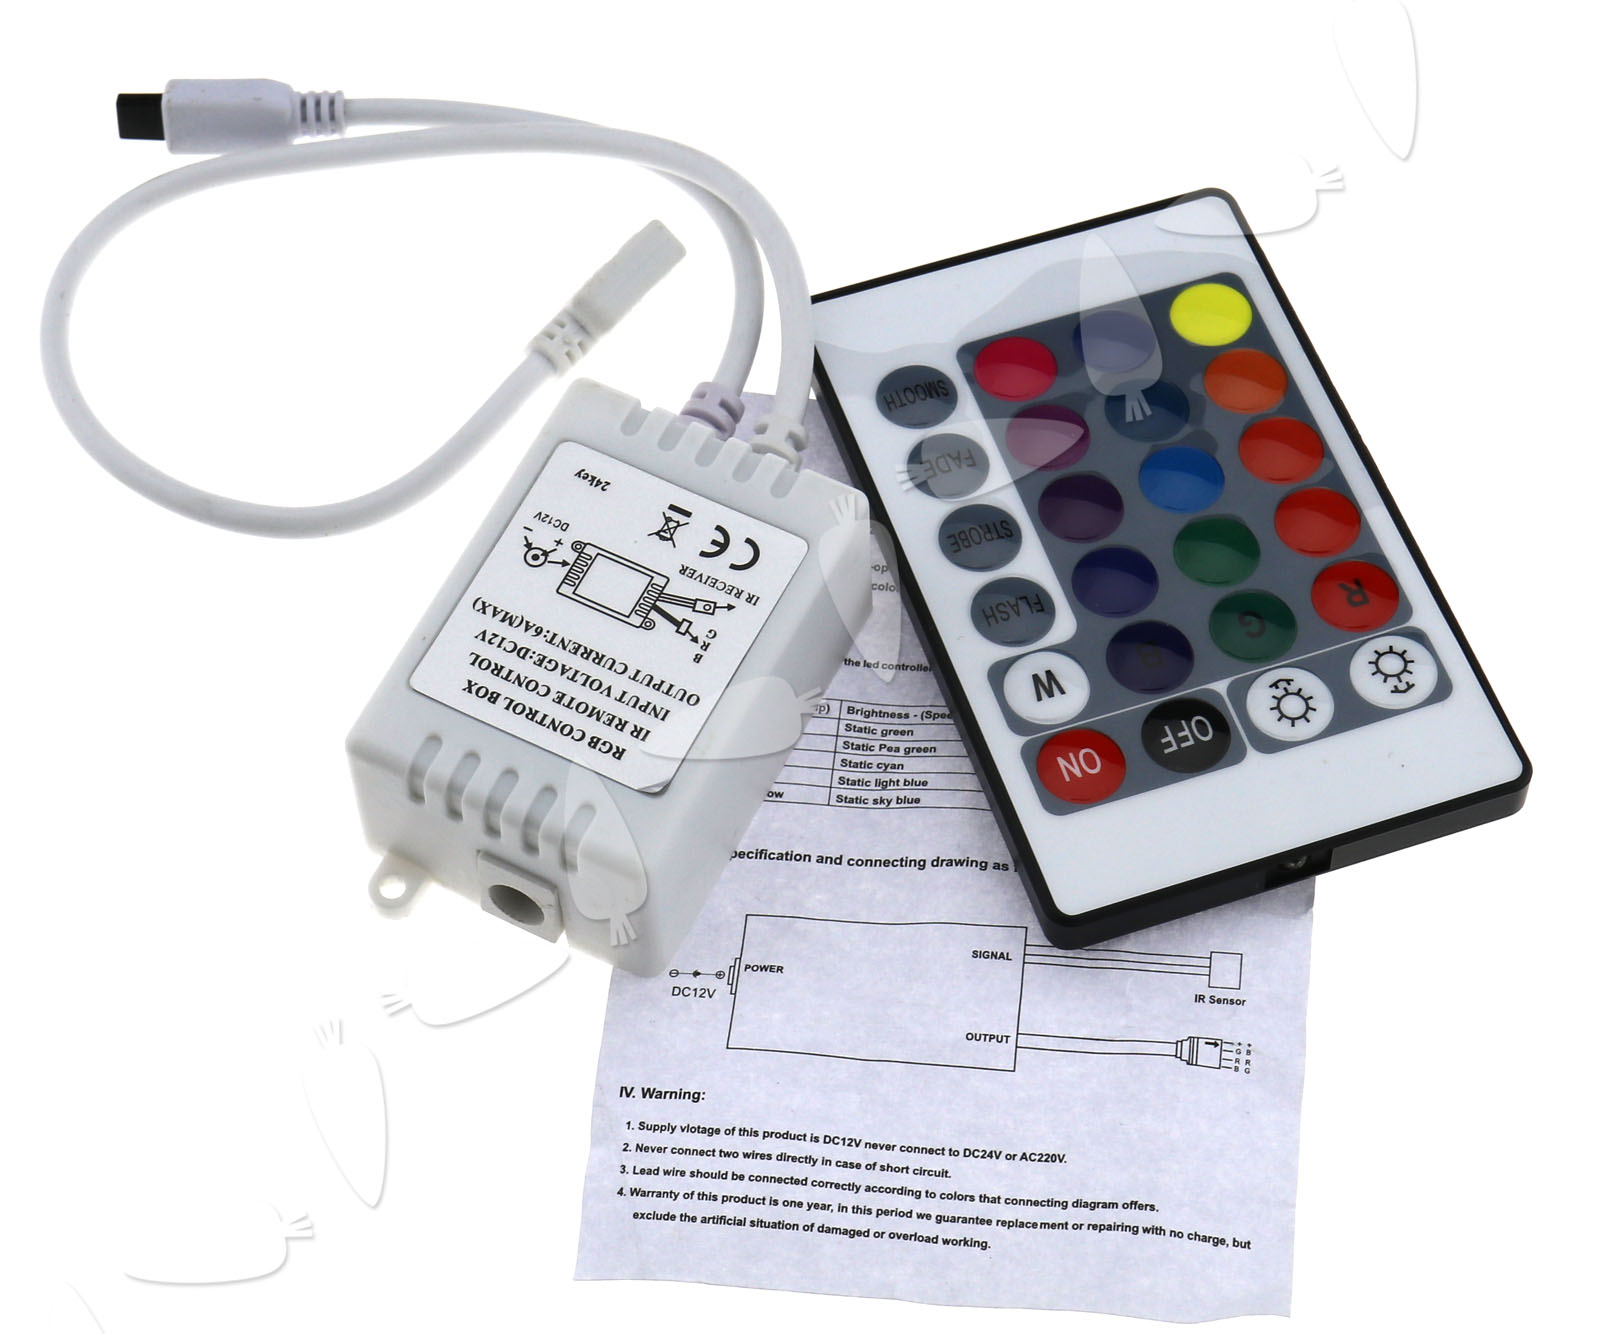 12v 24 Key Ir Remote Control Box For Rgb Led 3528 5050 Smd Strip Colour Controller Connection Diagram Lights